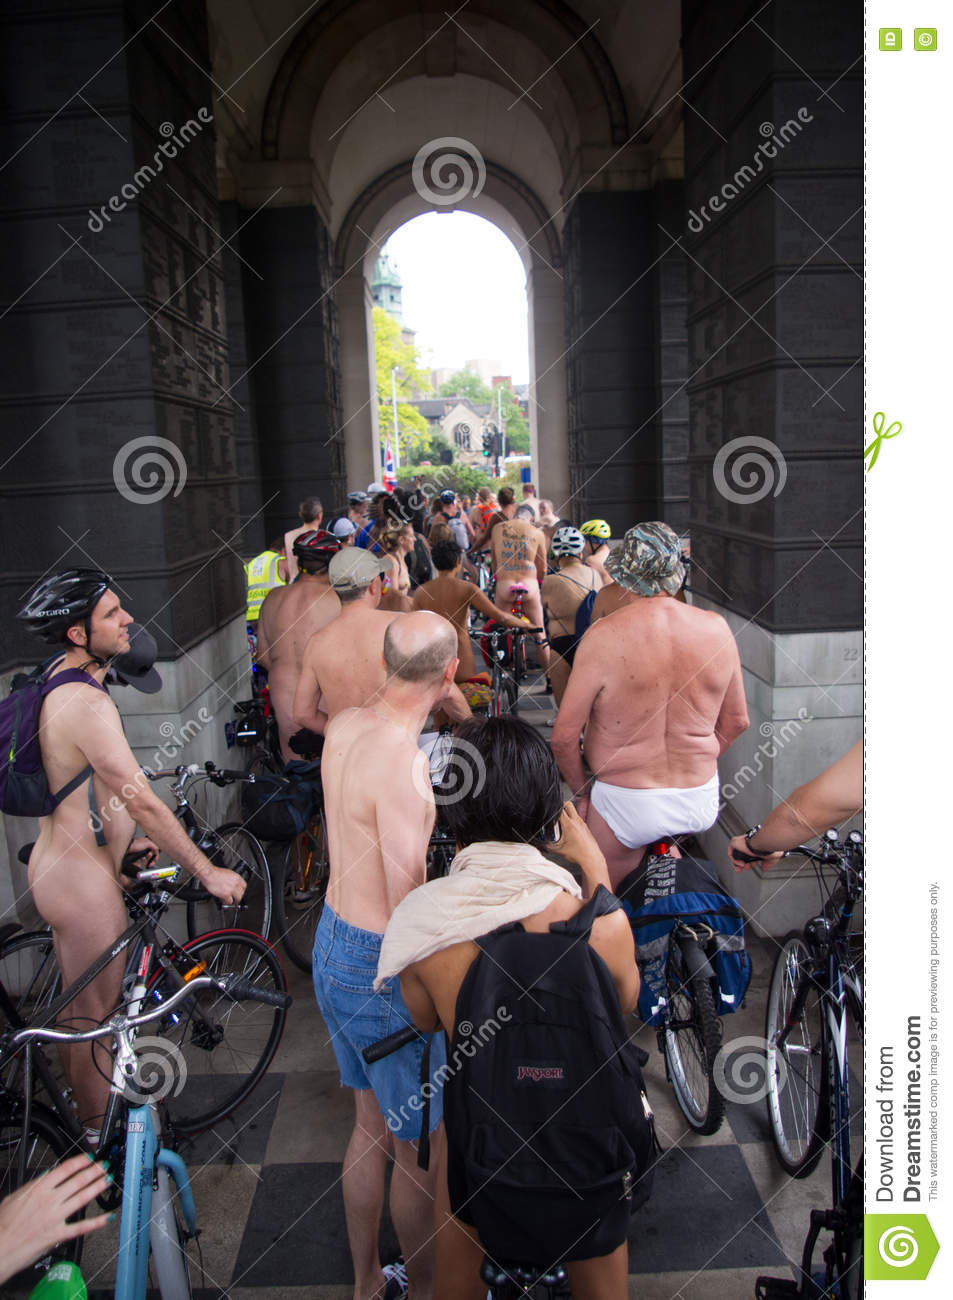 World Naked Bike Ride London 2016 Editorial Stock Photo -7247